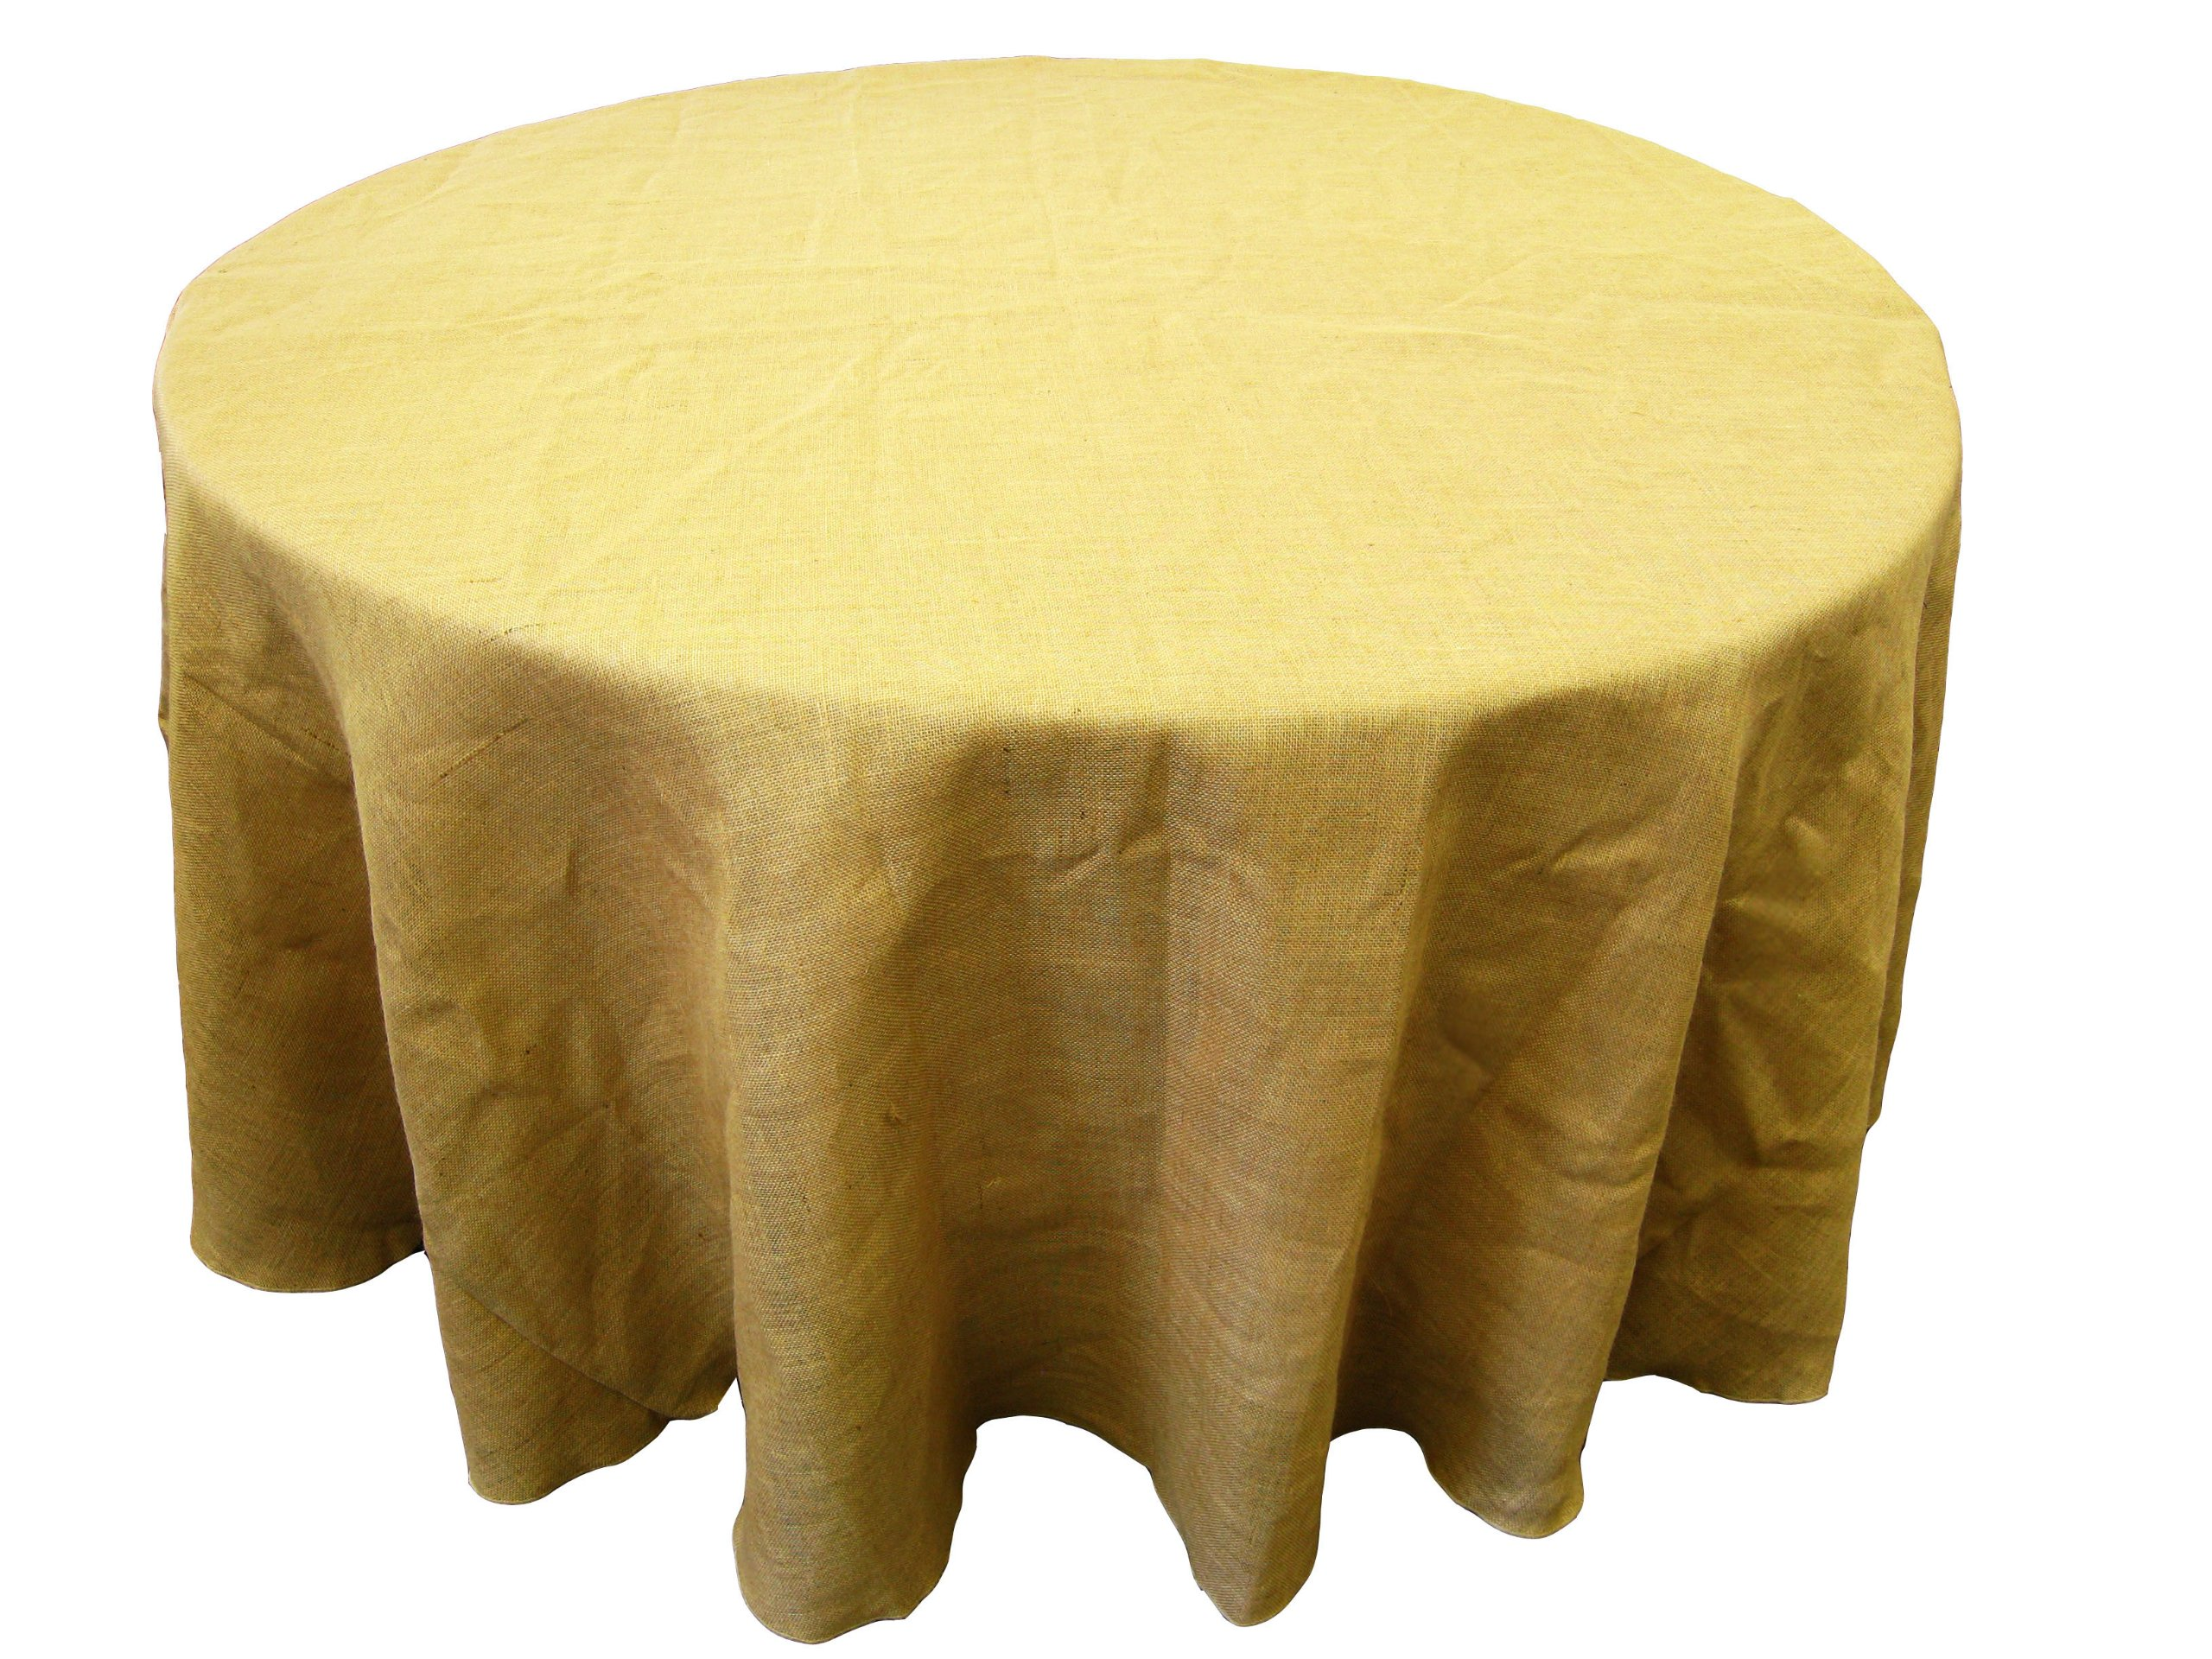 LA Linen Natural Burlap Tablecloth, Round, 108-Inch - 100% Premium Natural jute burlap Serged edge for a clean look. LA Linen exclusive color coded size tags for easy size identification - tablecloths, kitchen-dining-room-table-linens, kitchen-dining-room - 91AsKwpy5cL -